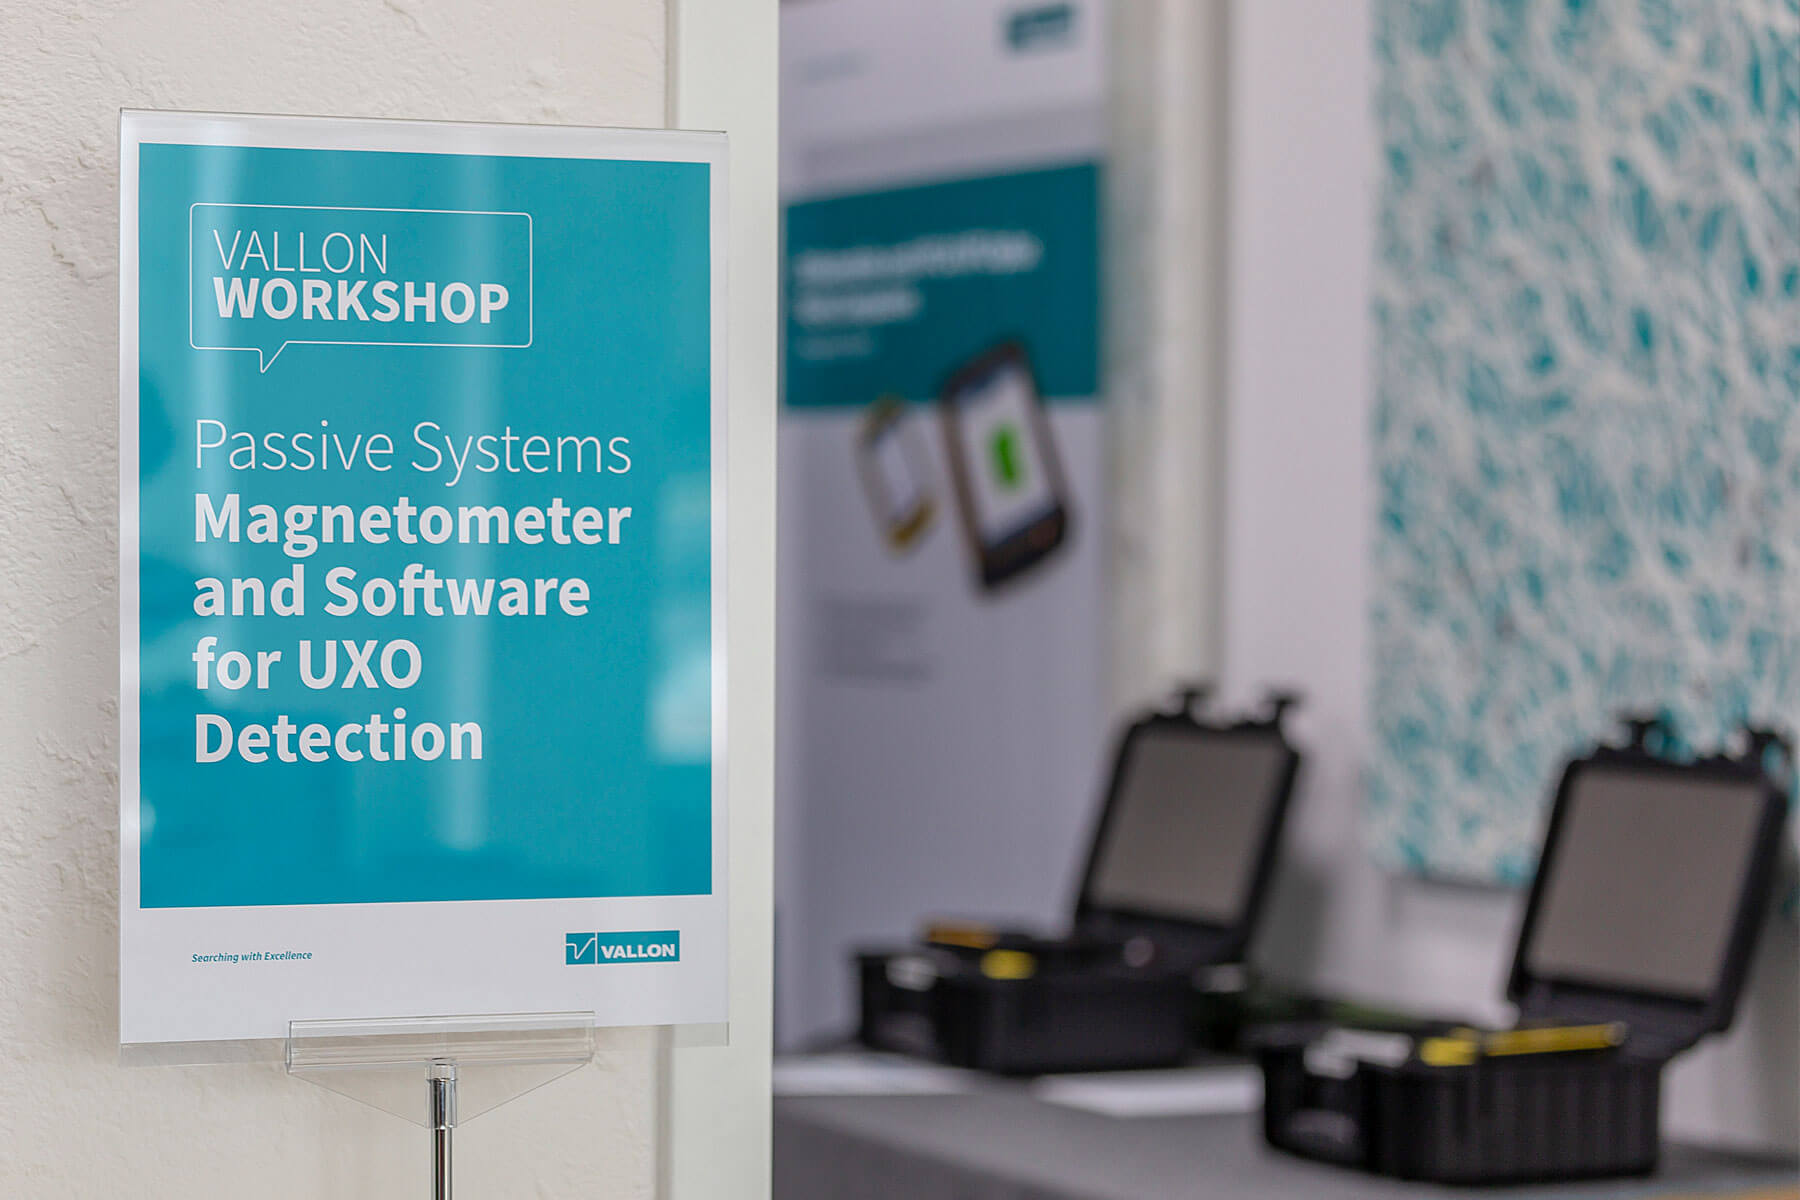 Detectors Workshop Impressions